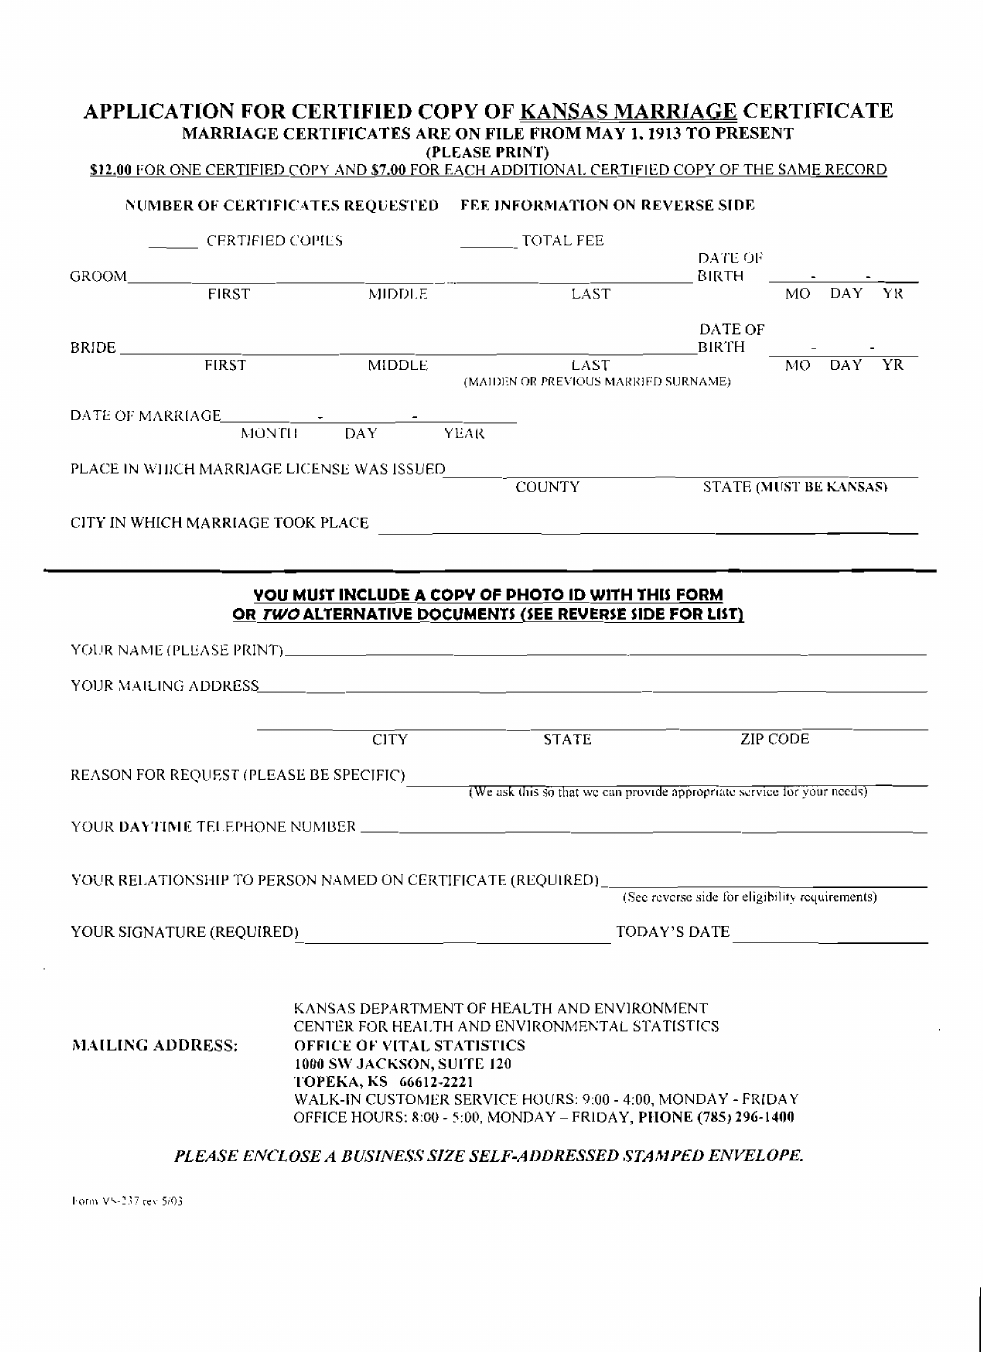 Application for certified copy of marriage certificate kansas application for certified copy of marriage certificate kansas free download xflitez Image collections